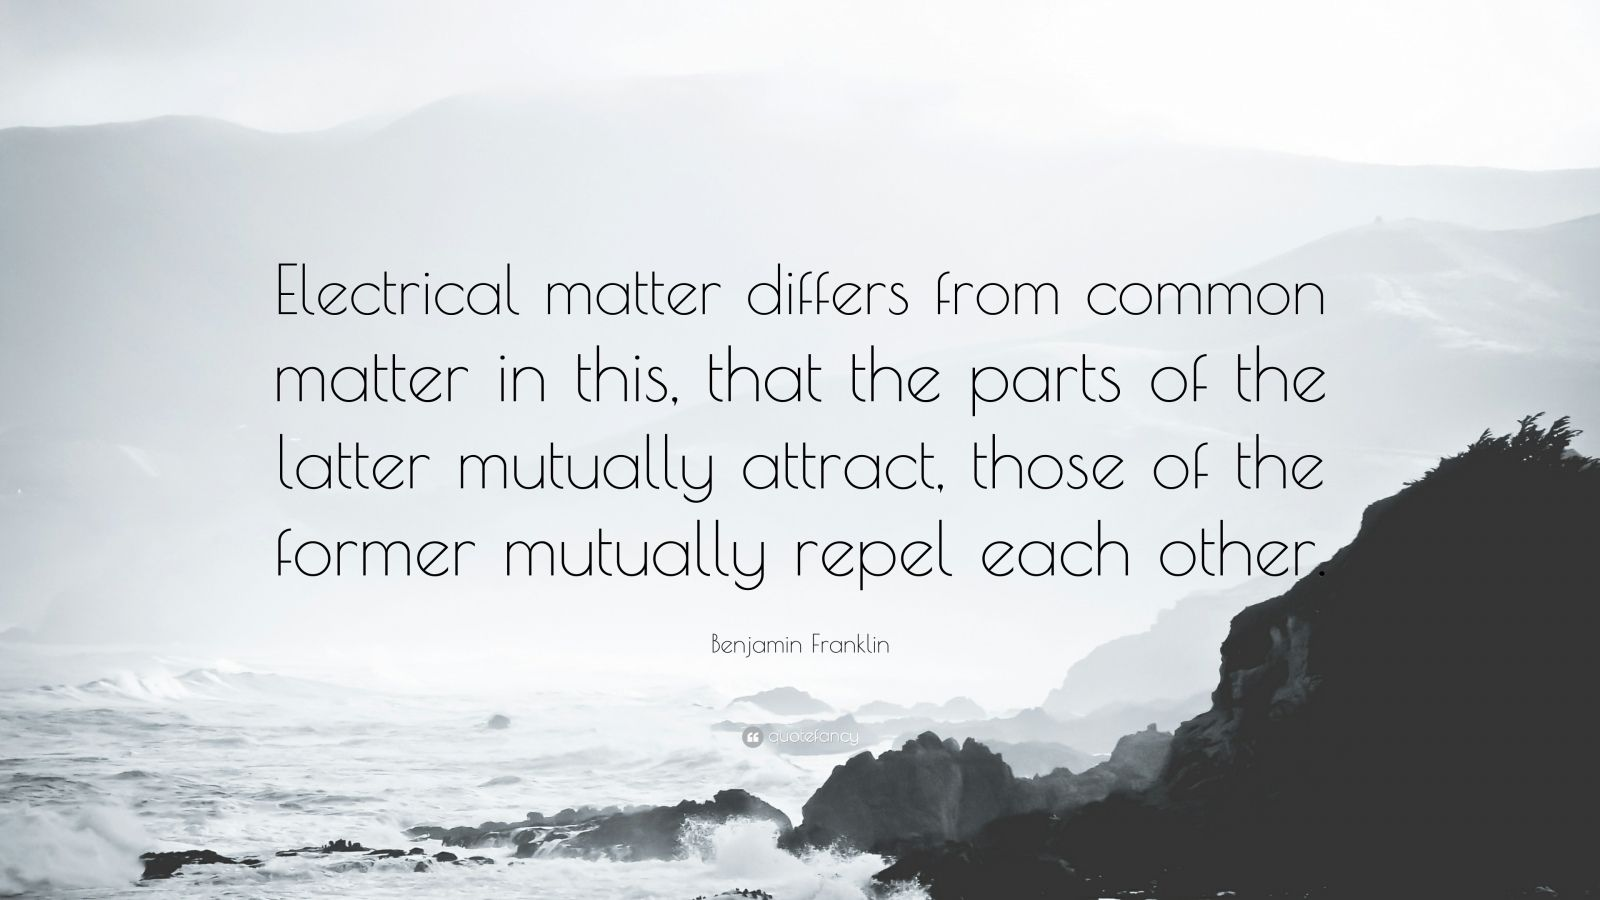 """Benjamin Franklin Quote: """"Electrical matter differs from common matter in this, that the parts of the latter mutually attract, those of the former mutually repel each other."""""""